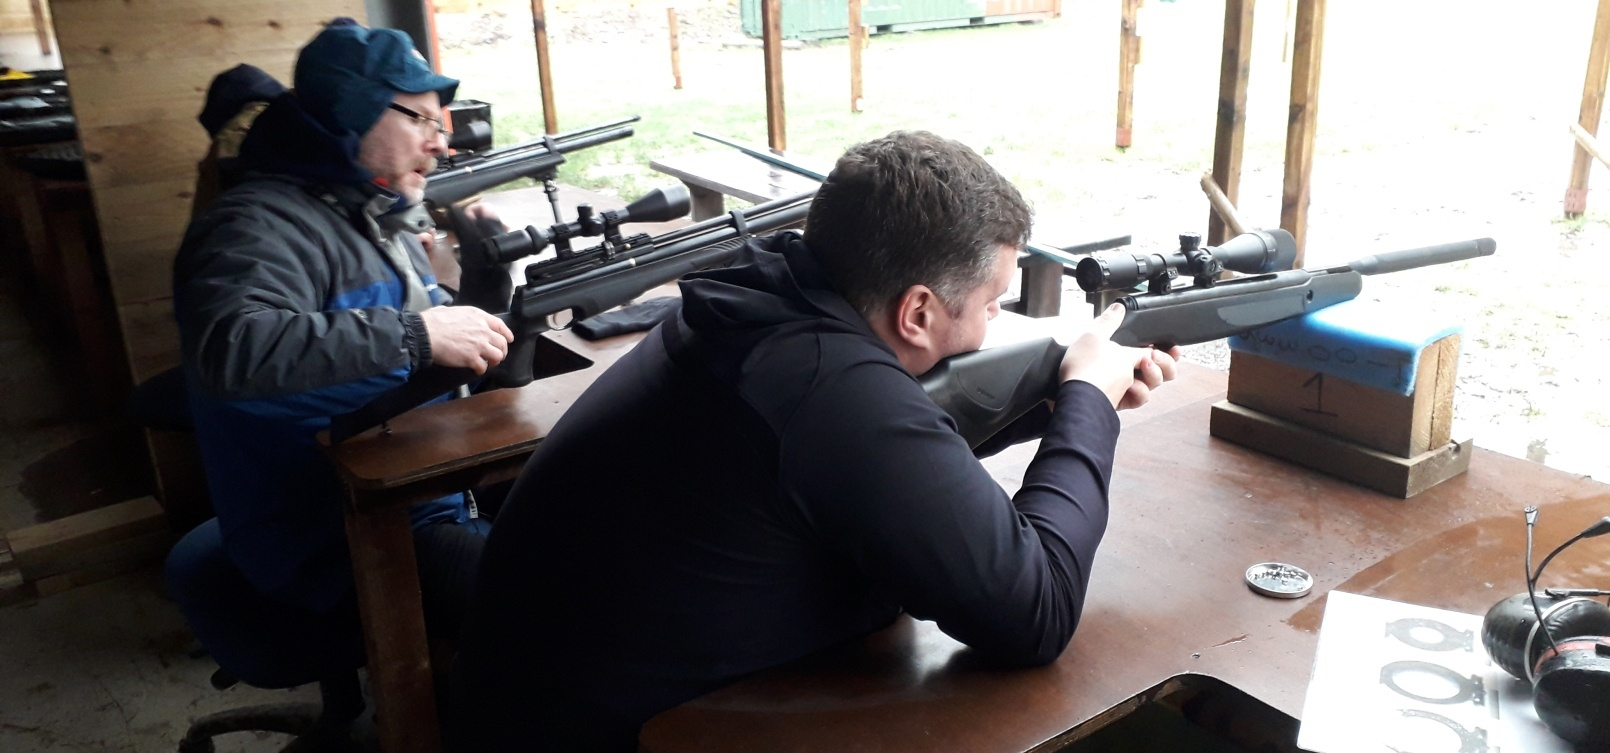 Multi Shooting Experience in Cheshire with 40 Rounds for 2-3